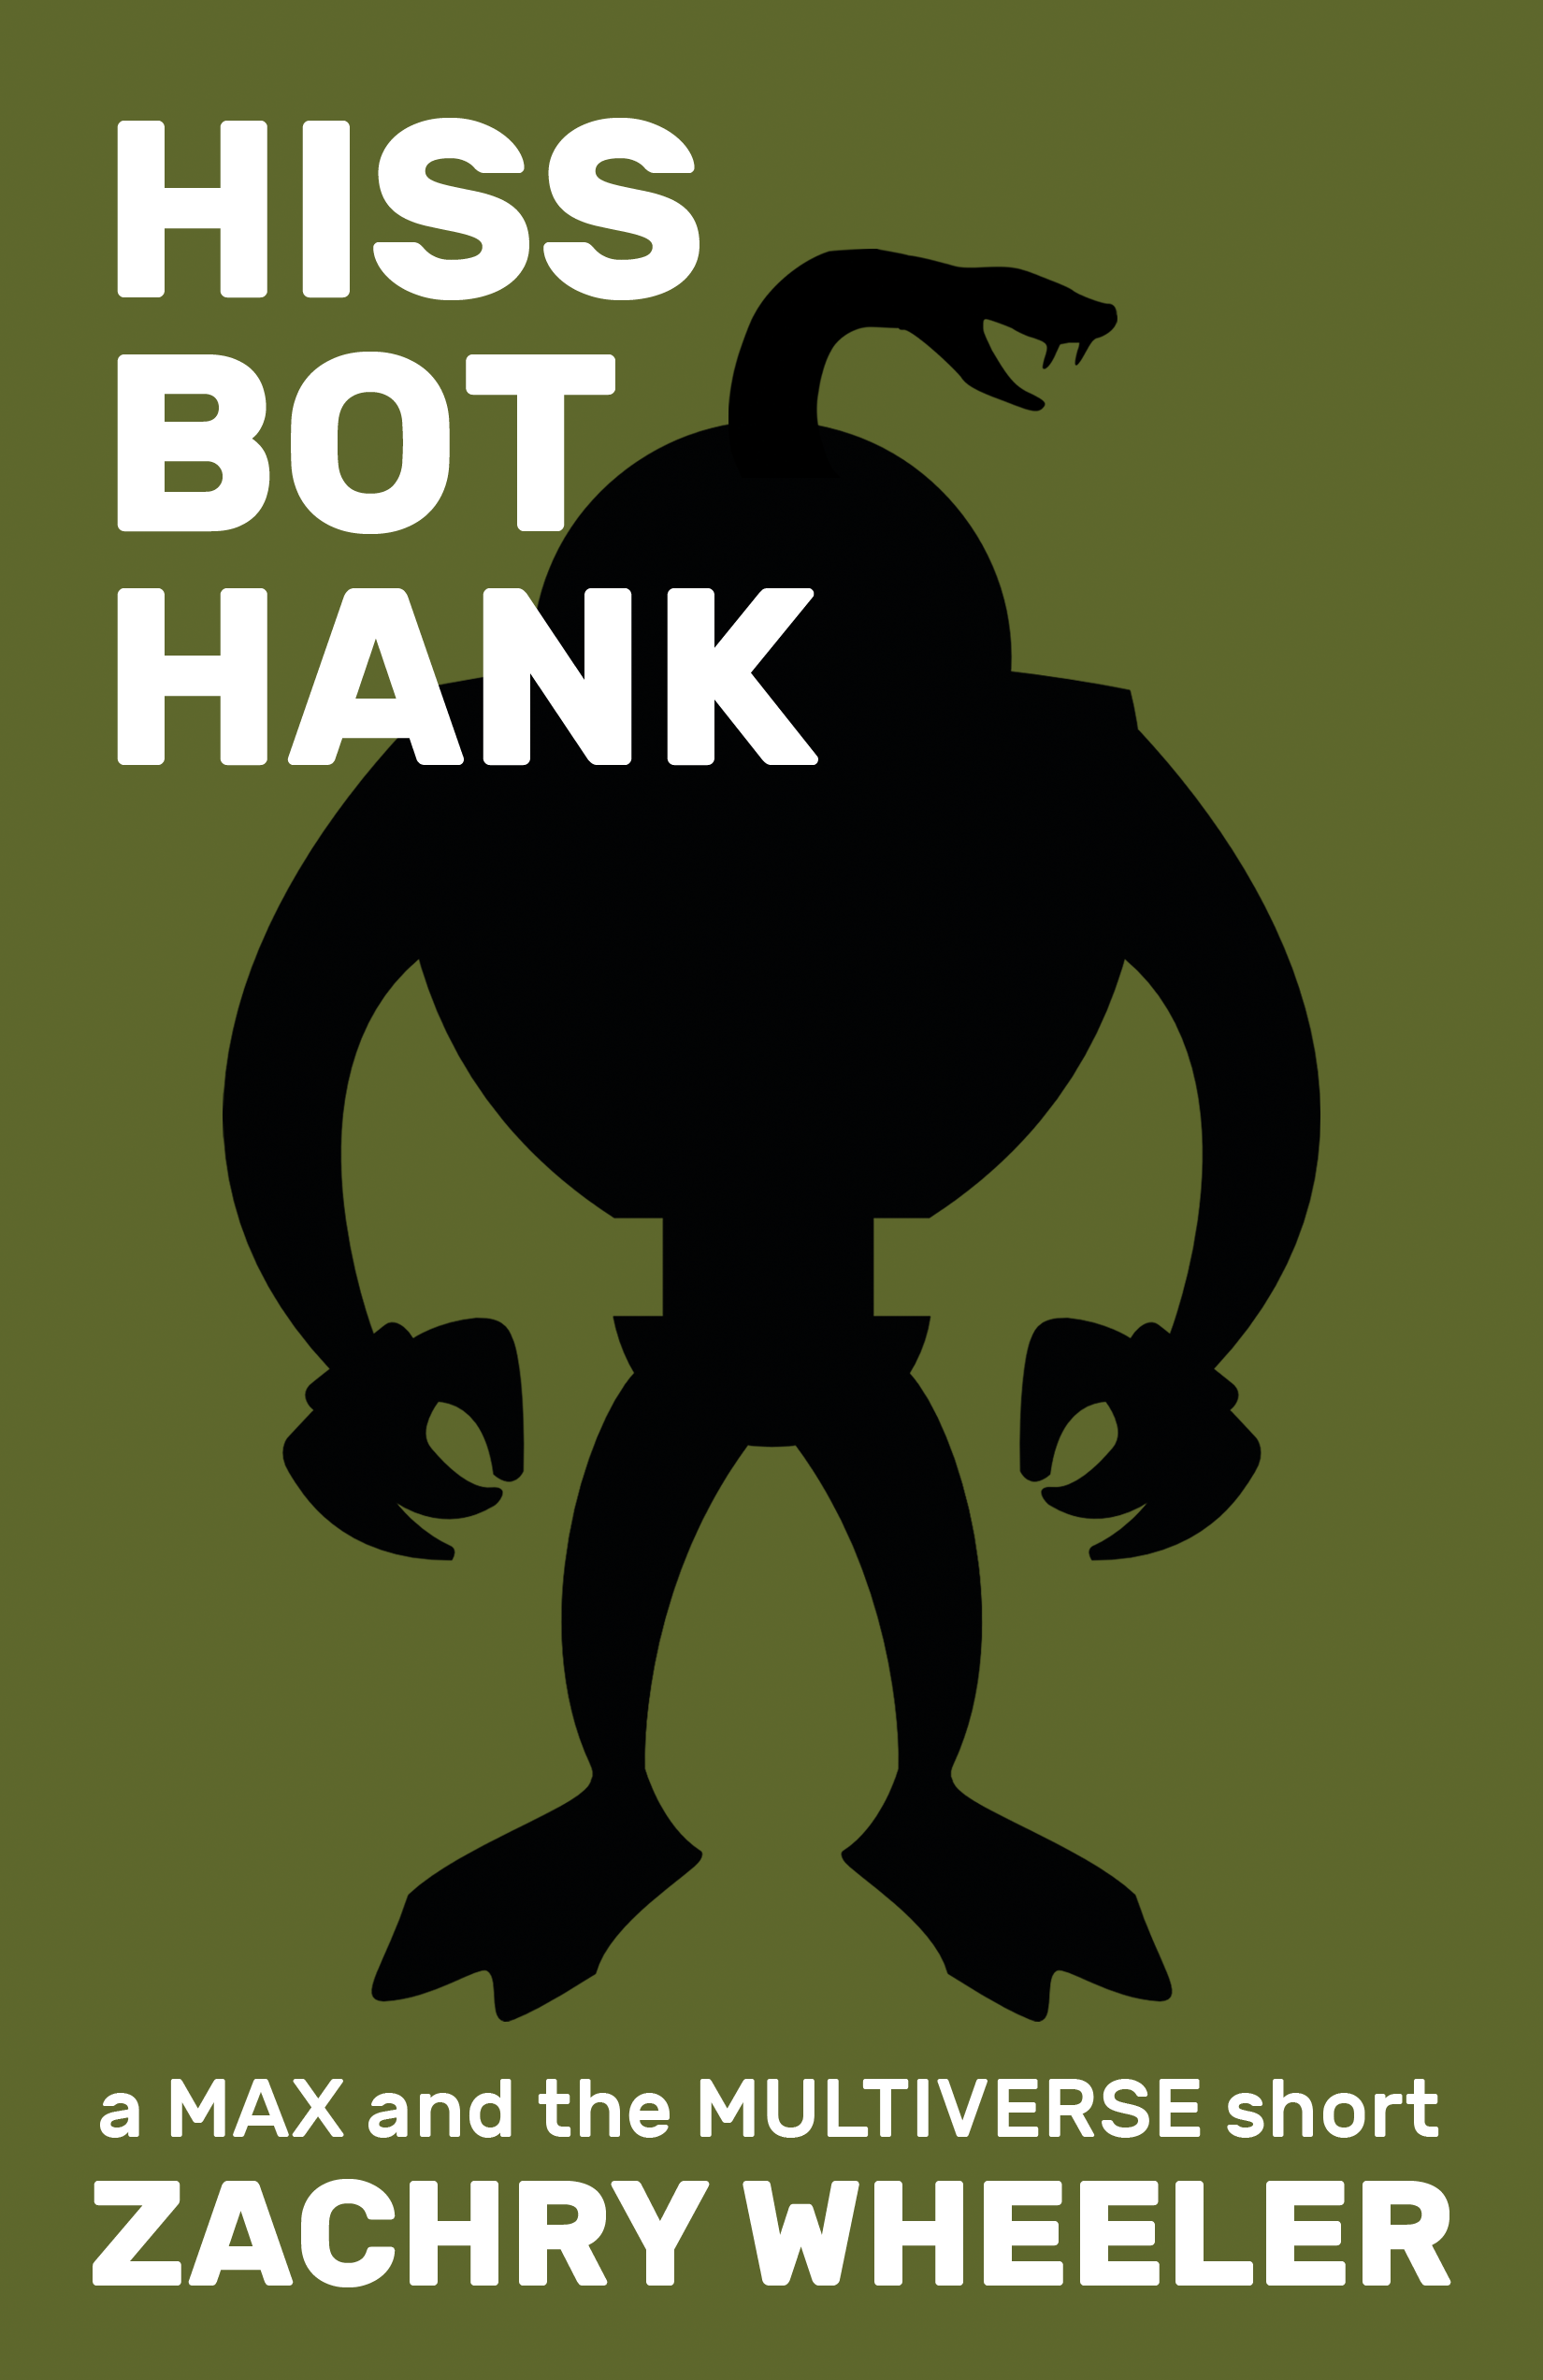 Learn more about Hiss Bot Hank (a Max and the Multiverse short)